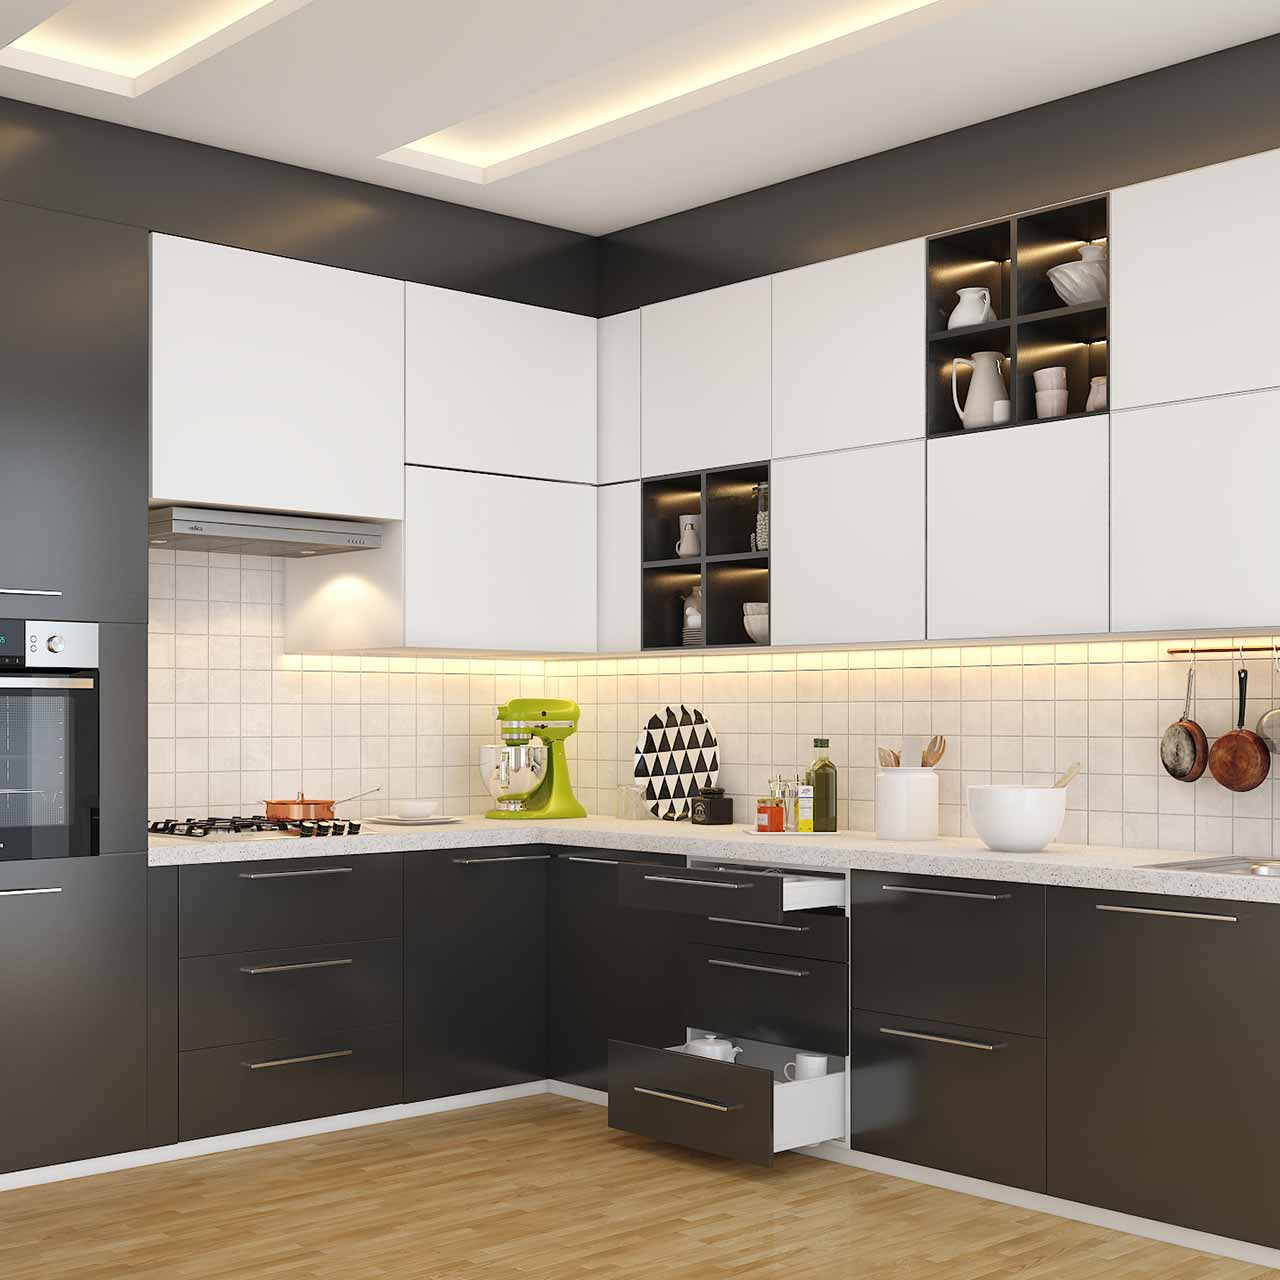 Types of kitchen: l shaped kitchen layout with grey and white cabinets and drawers on the bottom in l shaped modular kitchen photos